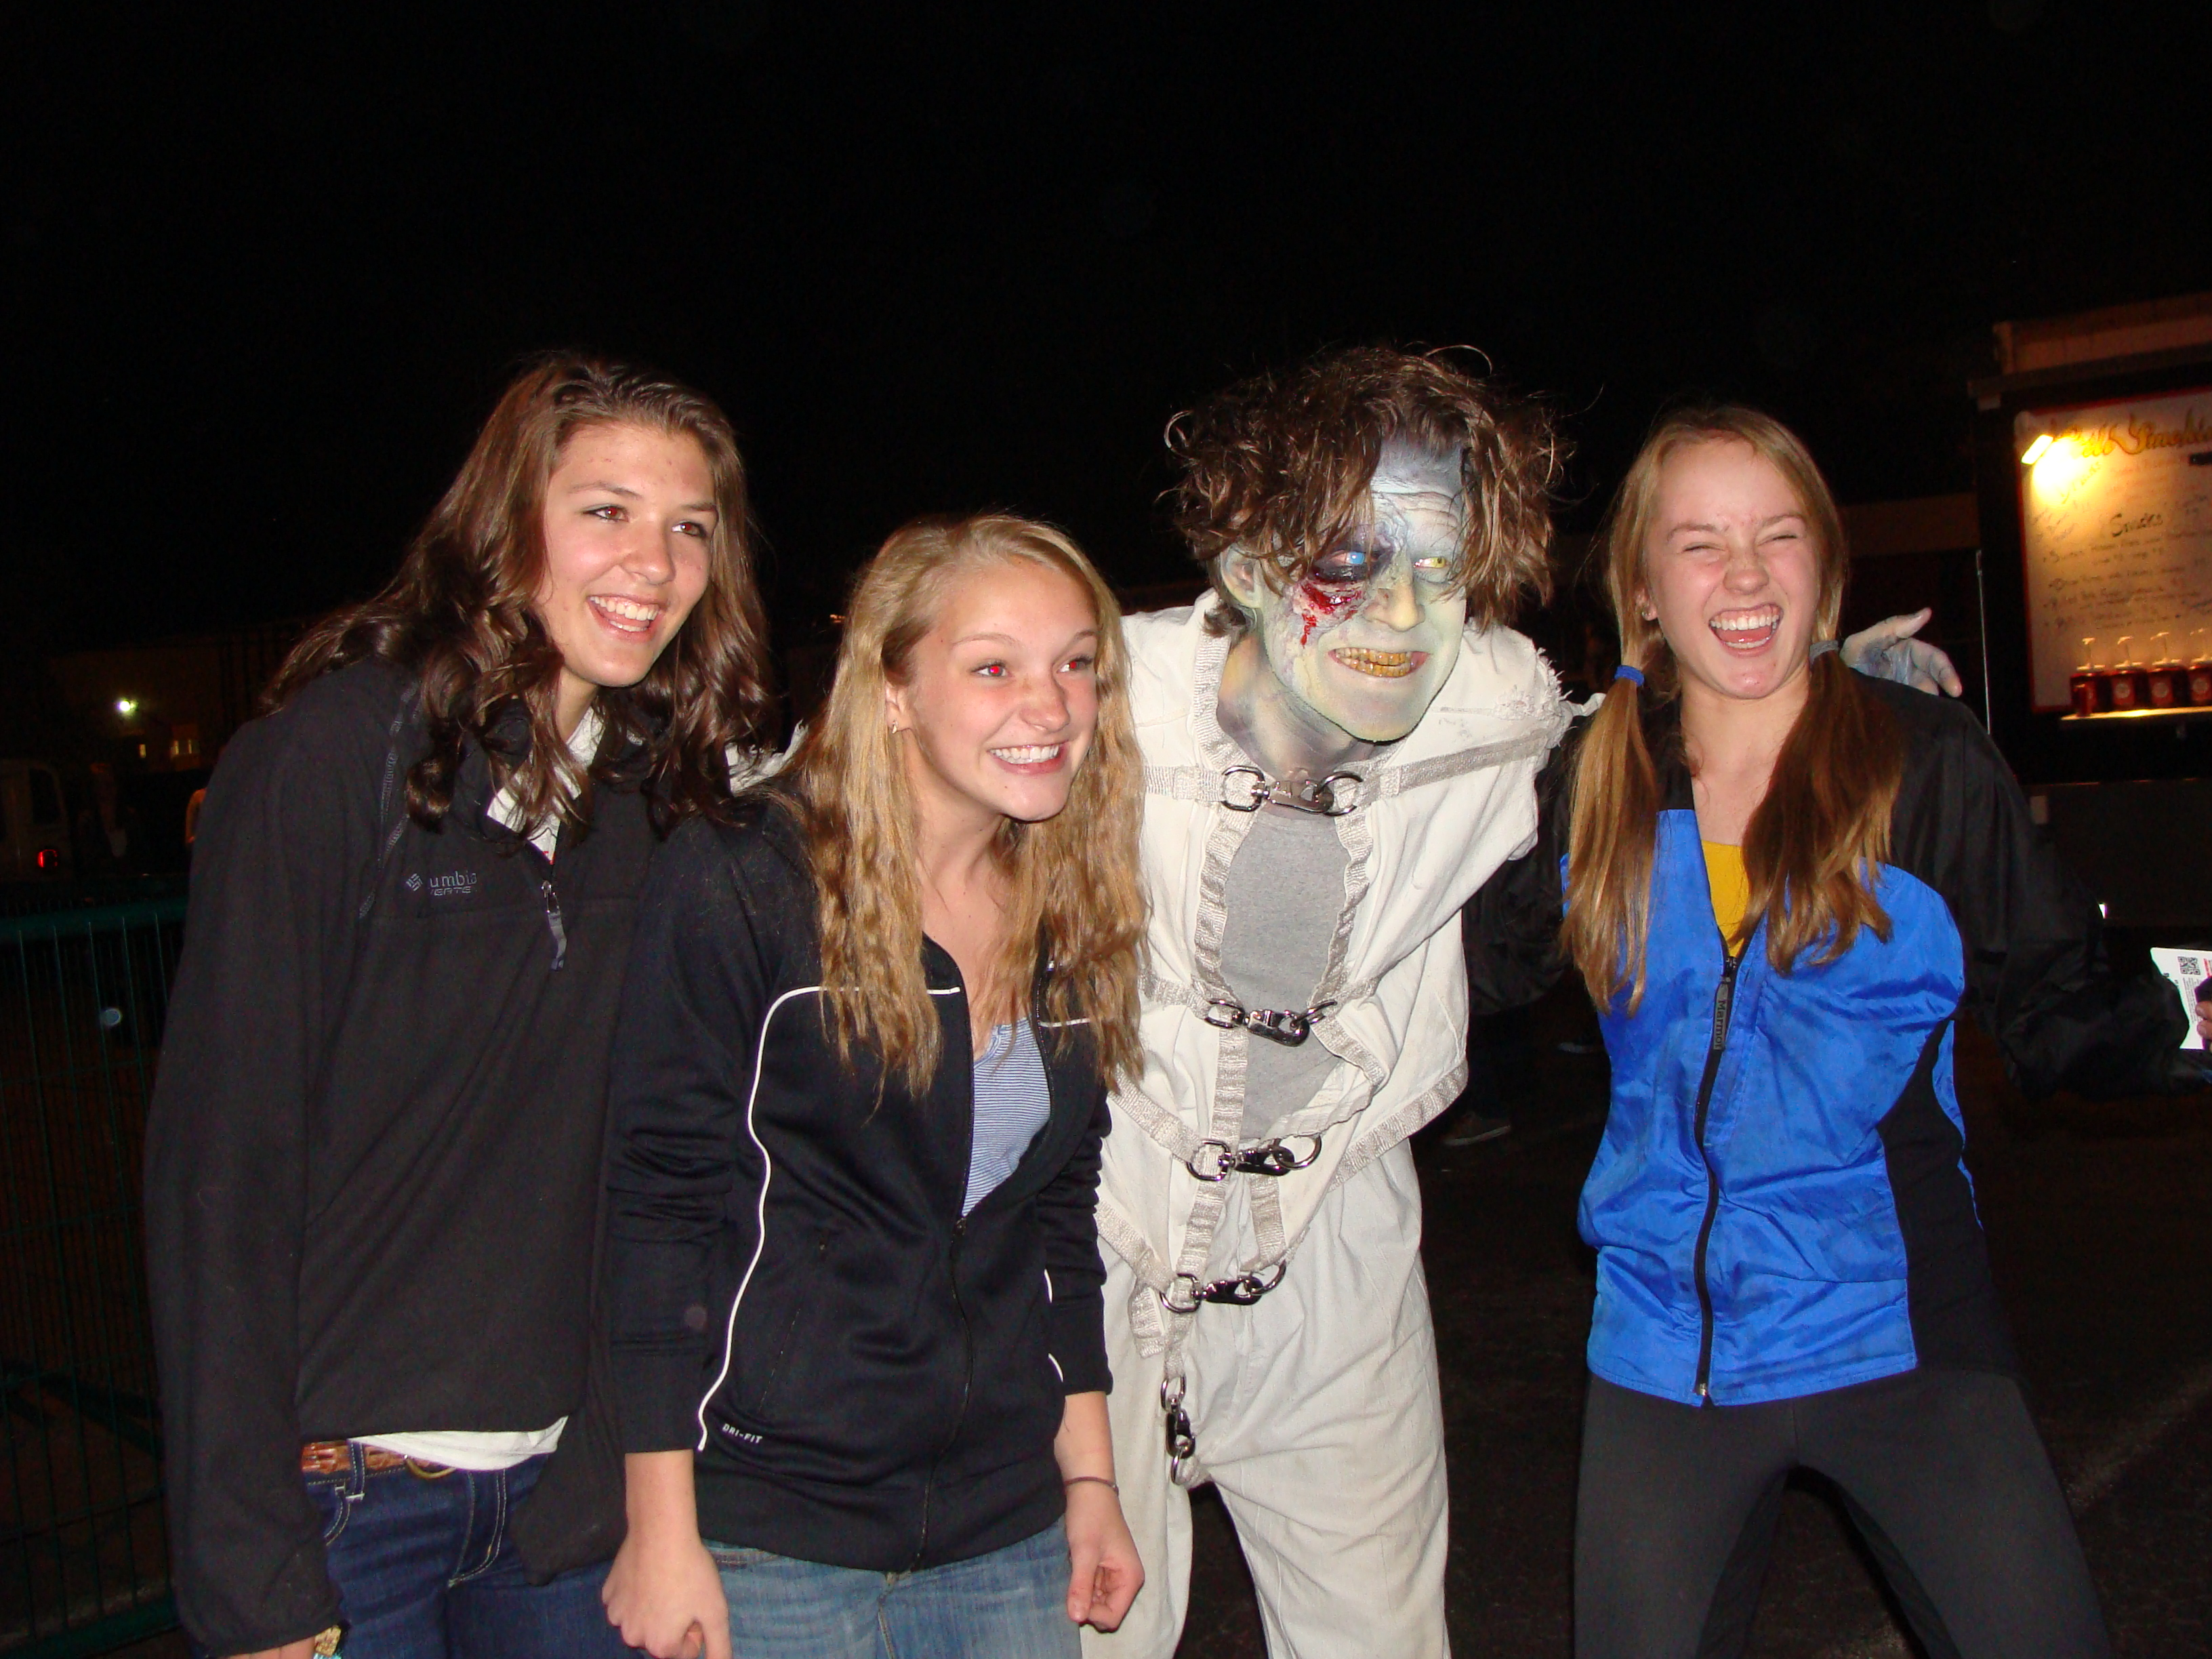 Photo: thrill-seekers at Asylum haunted house